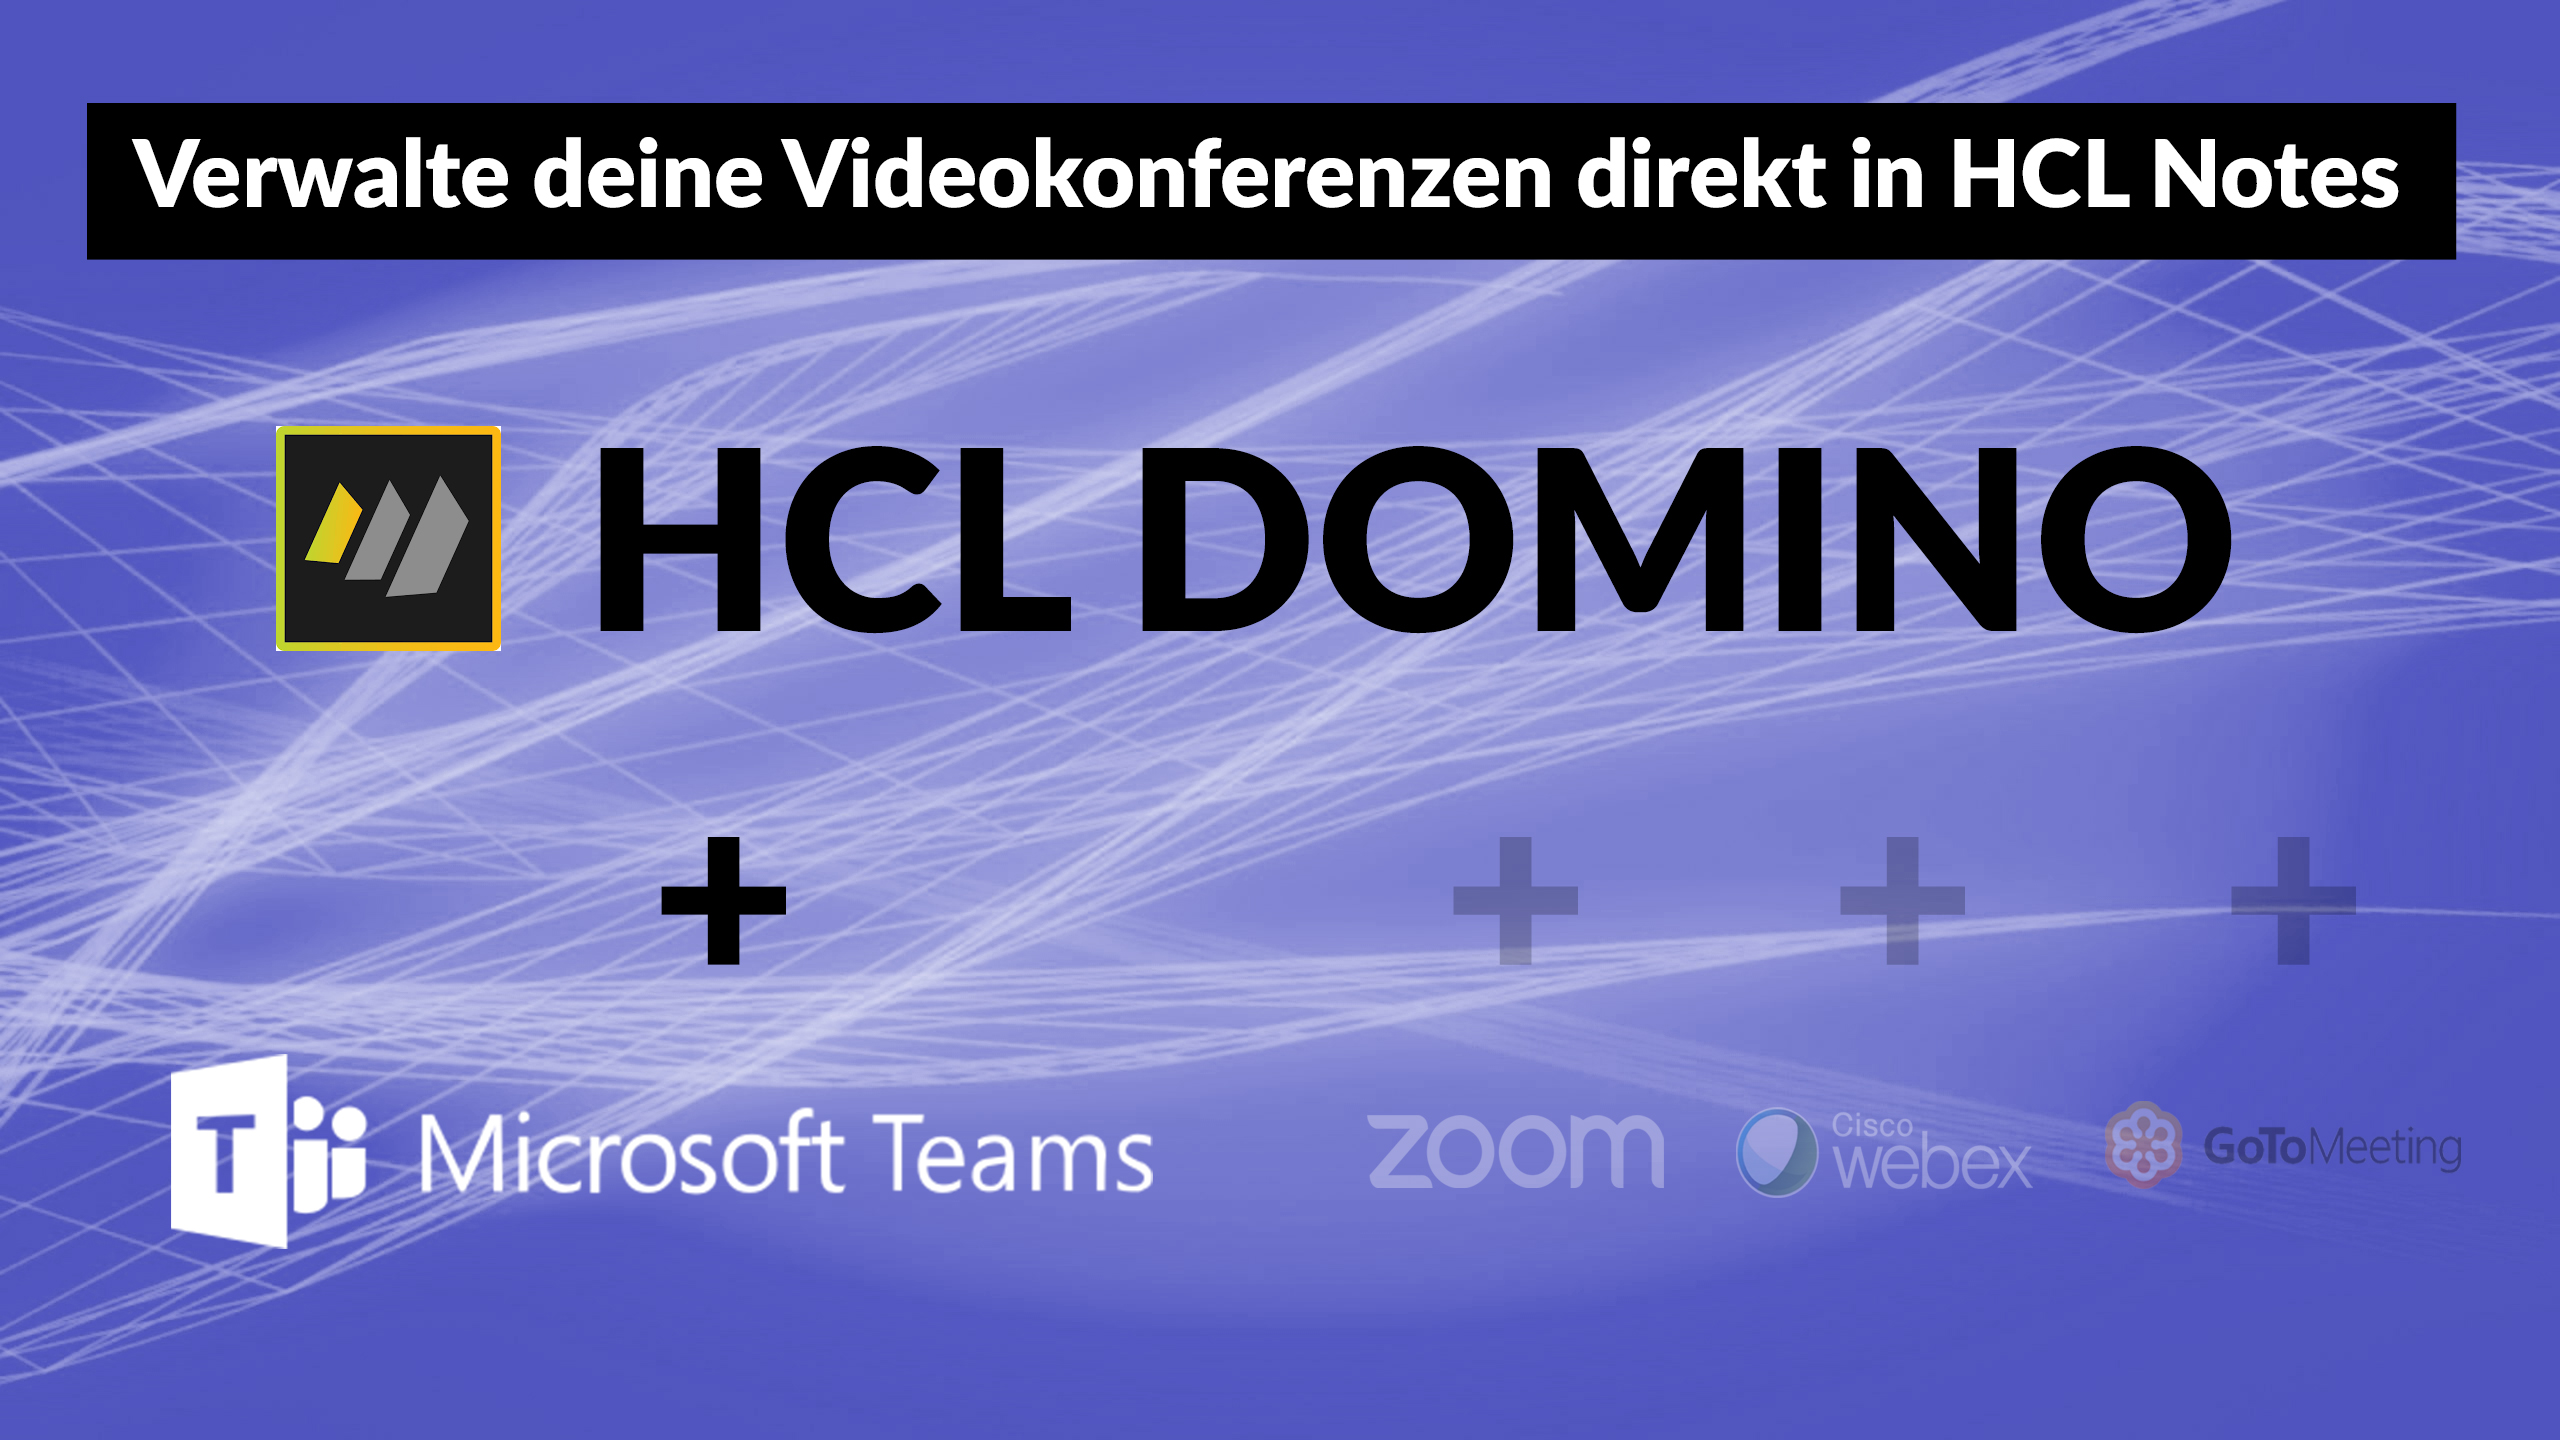 MS Teams HCL Webinar